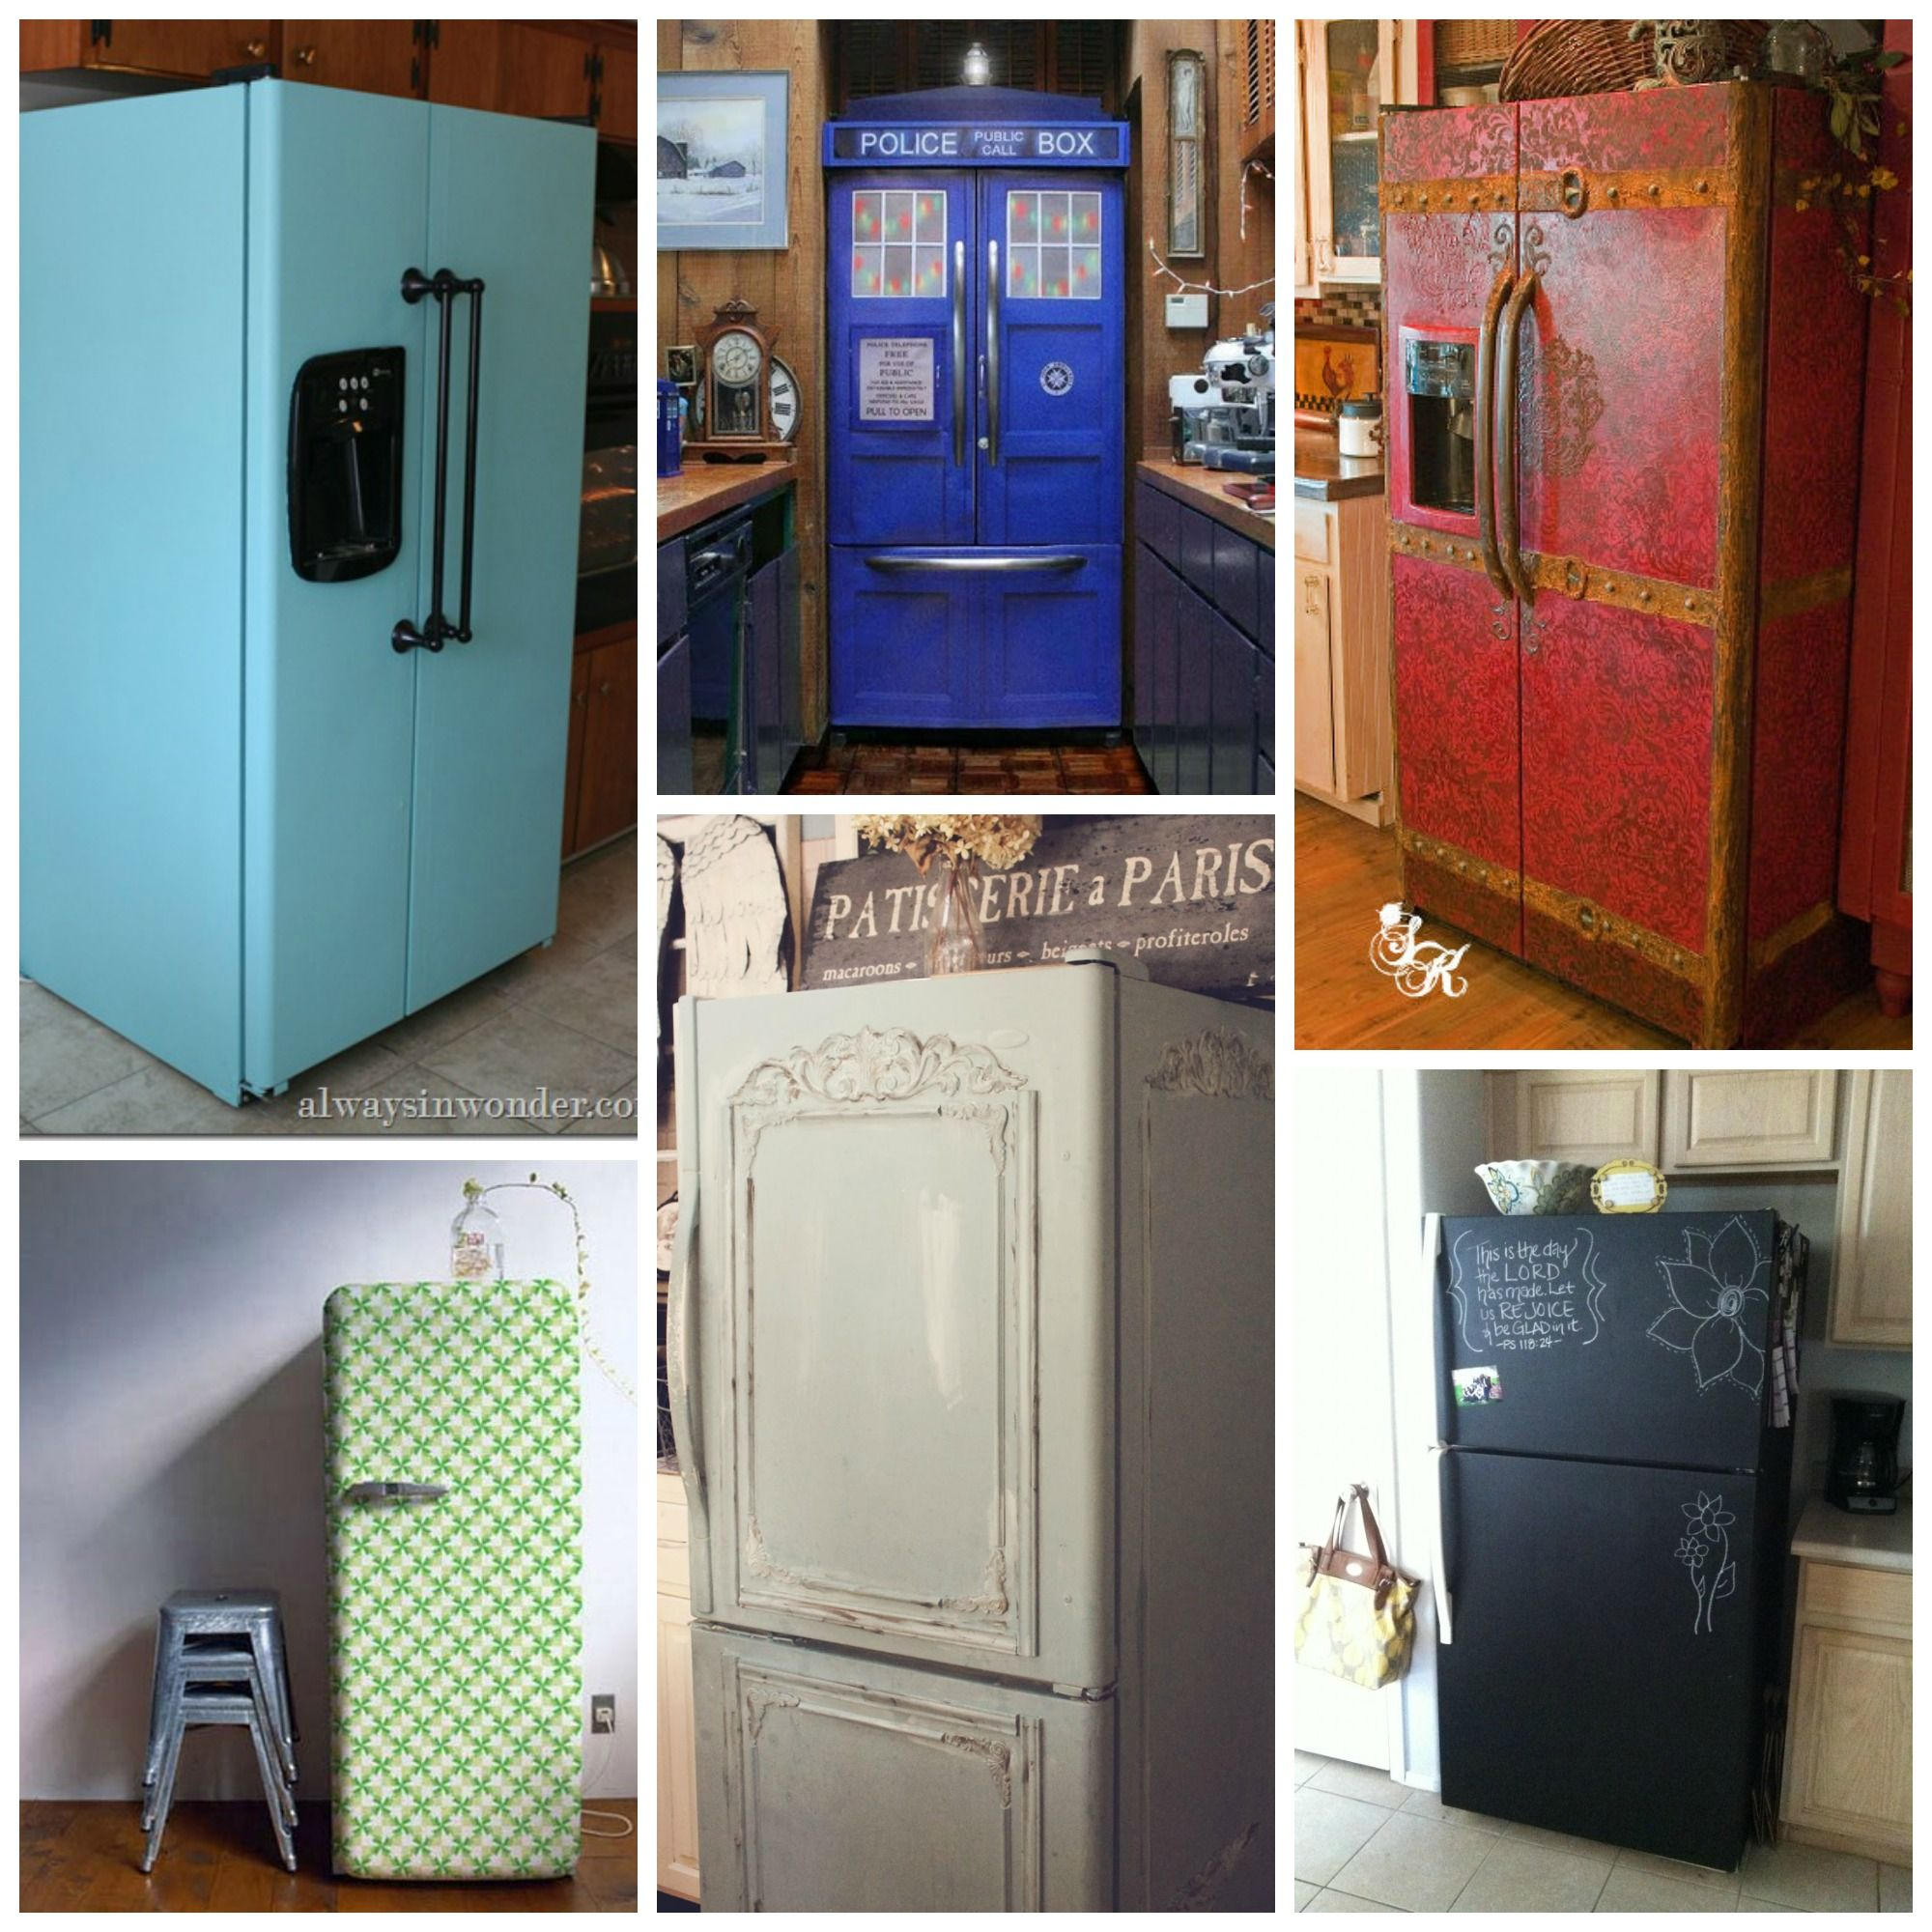 13 Fridge Makeovers That Will Blow Your Mind Diy For Life Refrigerator Makeover Fridge Makeover Home Diy